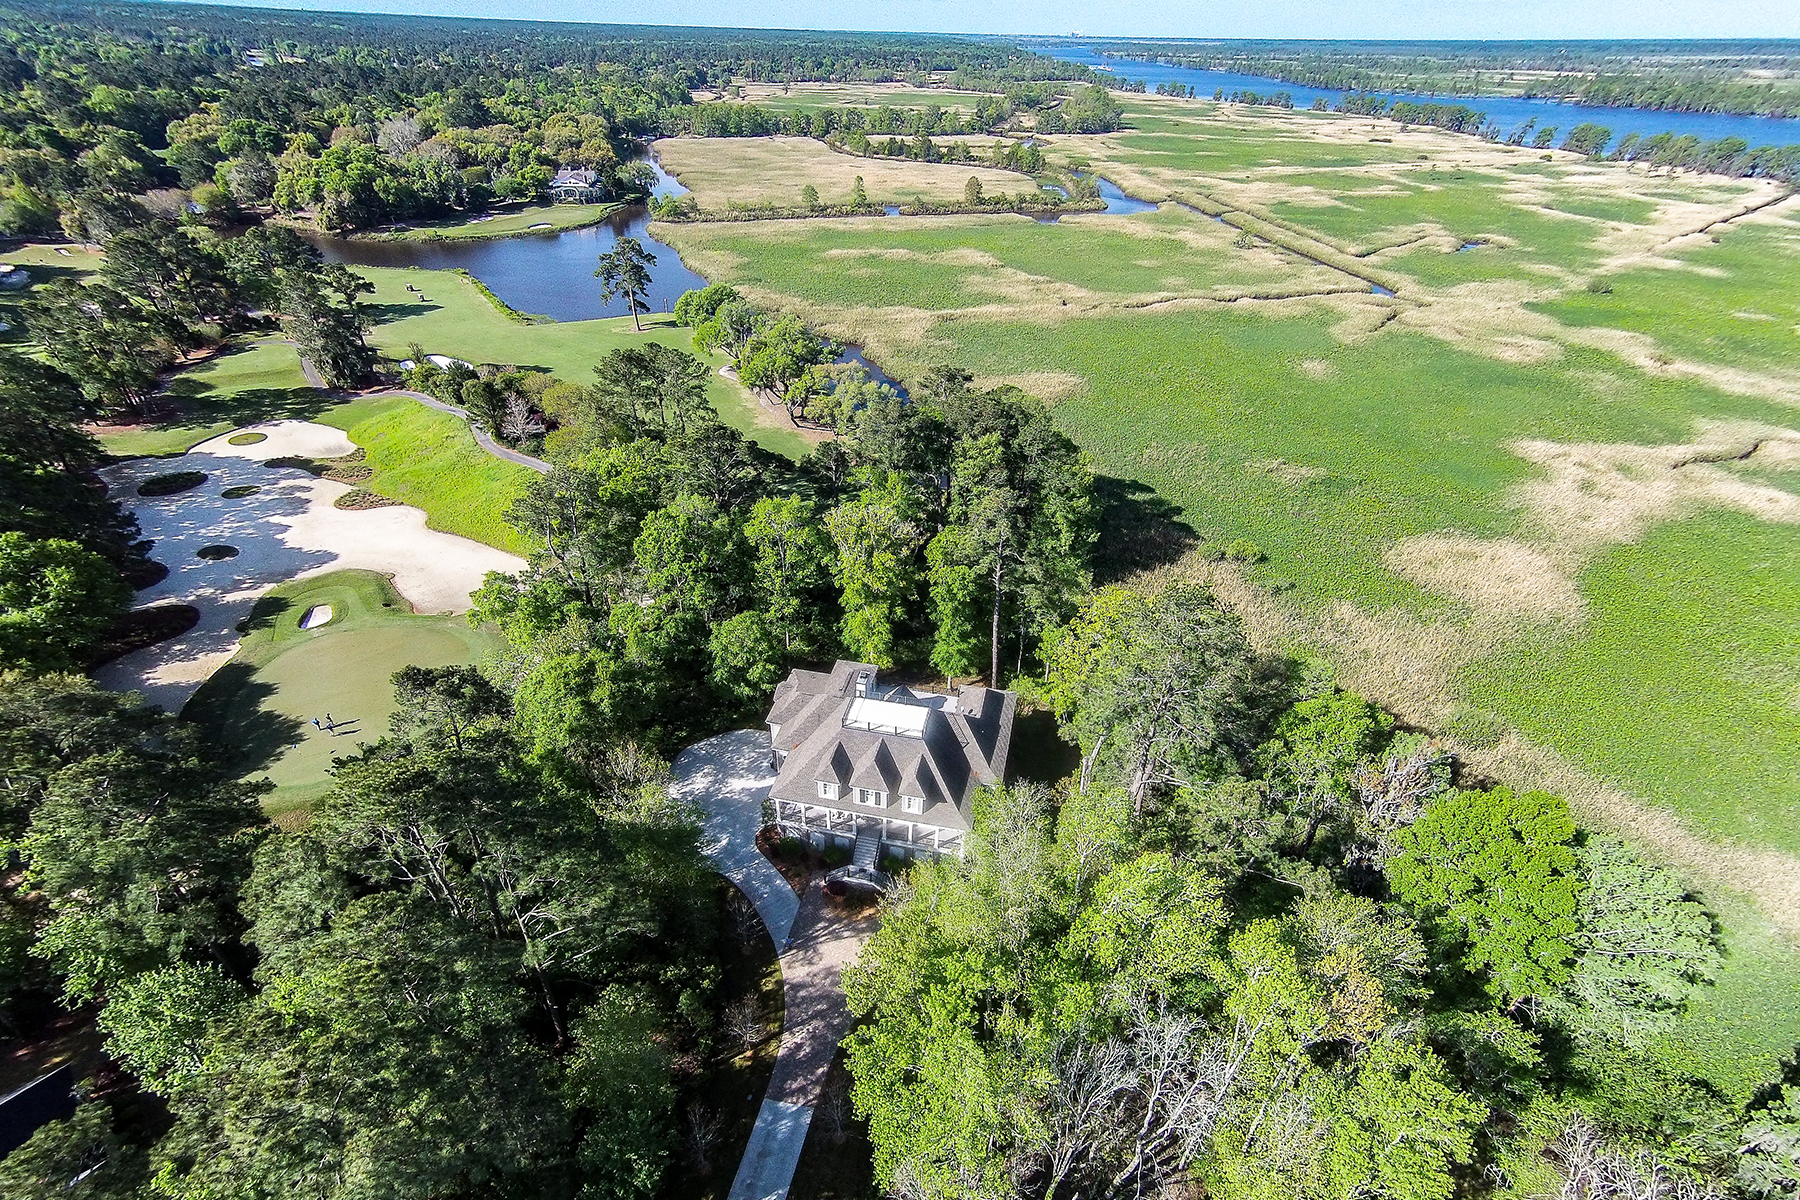 Single Family Home for Sale at 171 Olde Canal Loop Pawleys Island, South Carolina 29585 United States